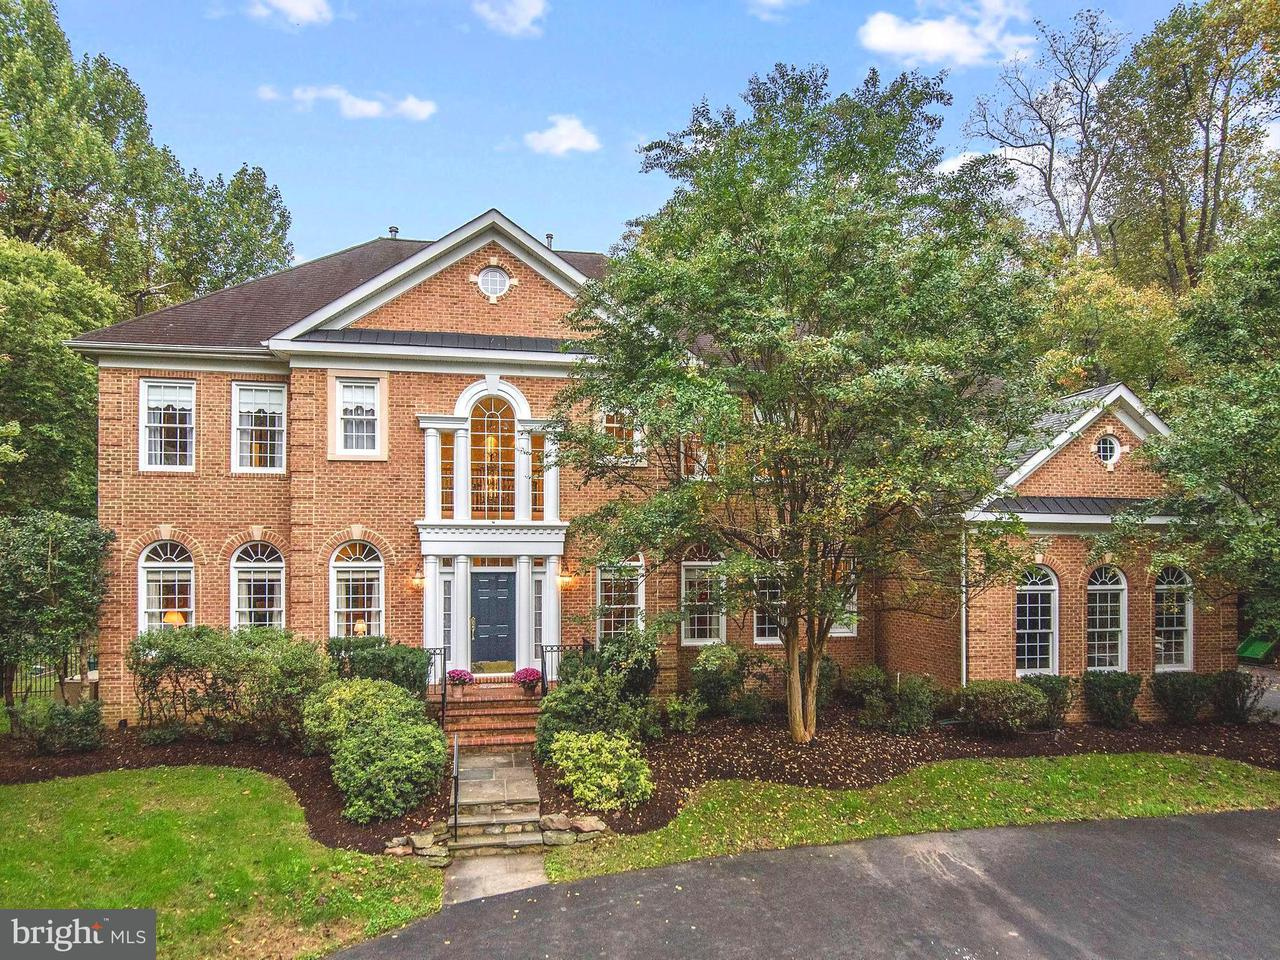 Single Family Home for Sale at 15410 RIVER Road 15410 RIVER Road Germantown, Maryland 20874 United States